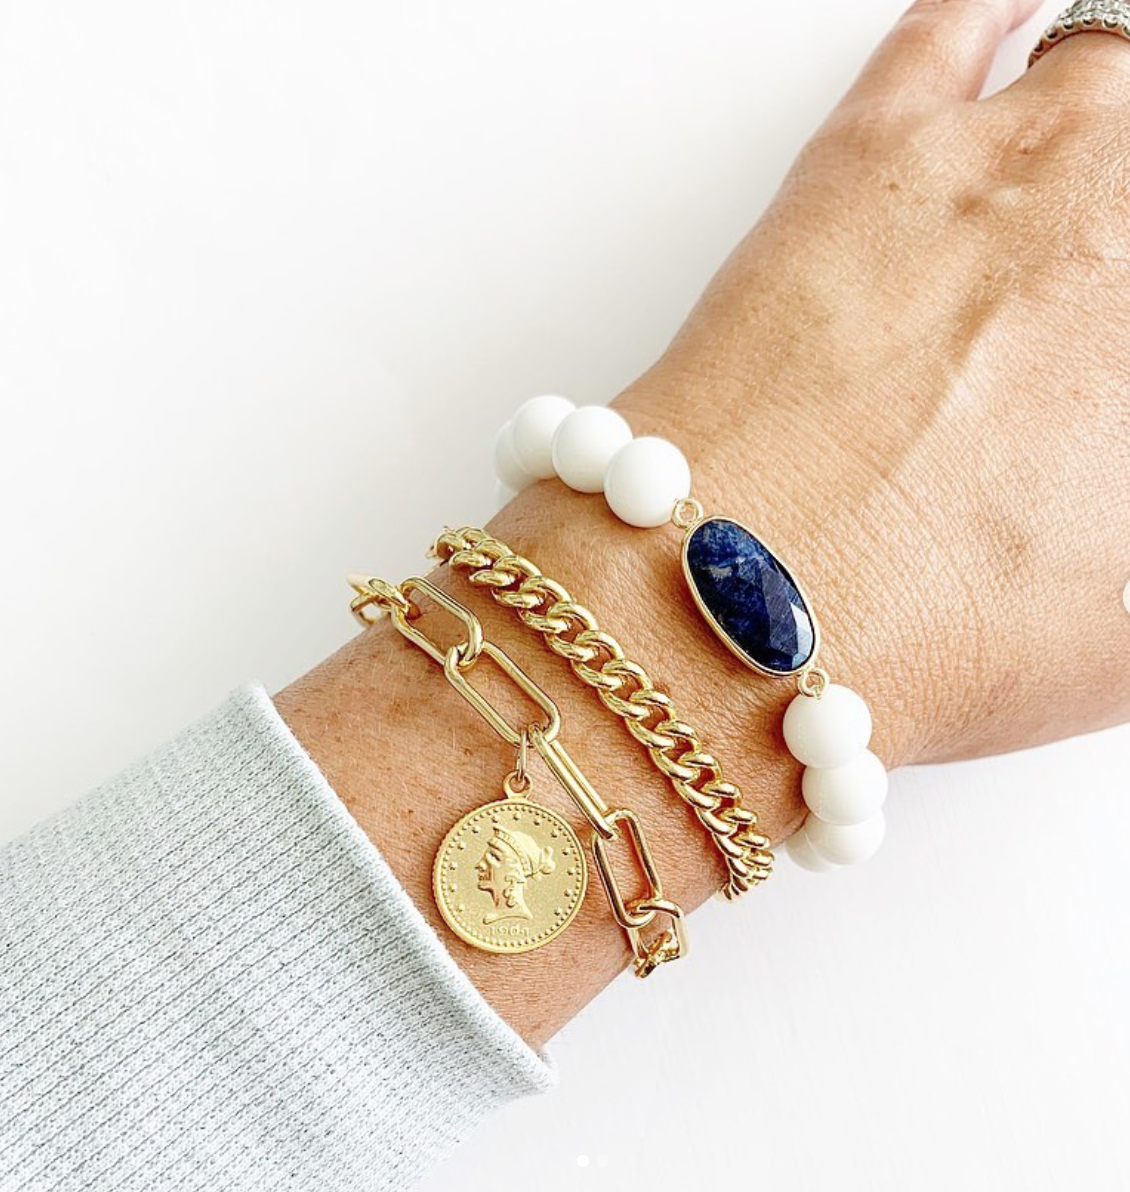 Our signature 14k gold chain bracelets with our signature pendant and our gemstone bracelet pair perfectly together in this boho inspired bracelet stack! #bohoinspo #bohostyle #goldjewelry #jewelryinspo #boholove #bohojewelry